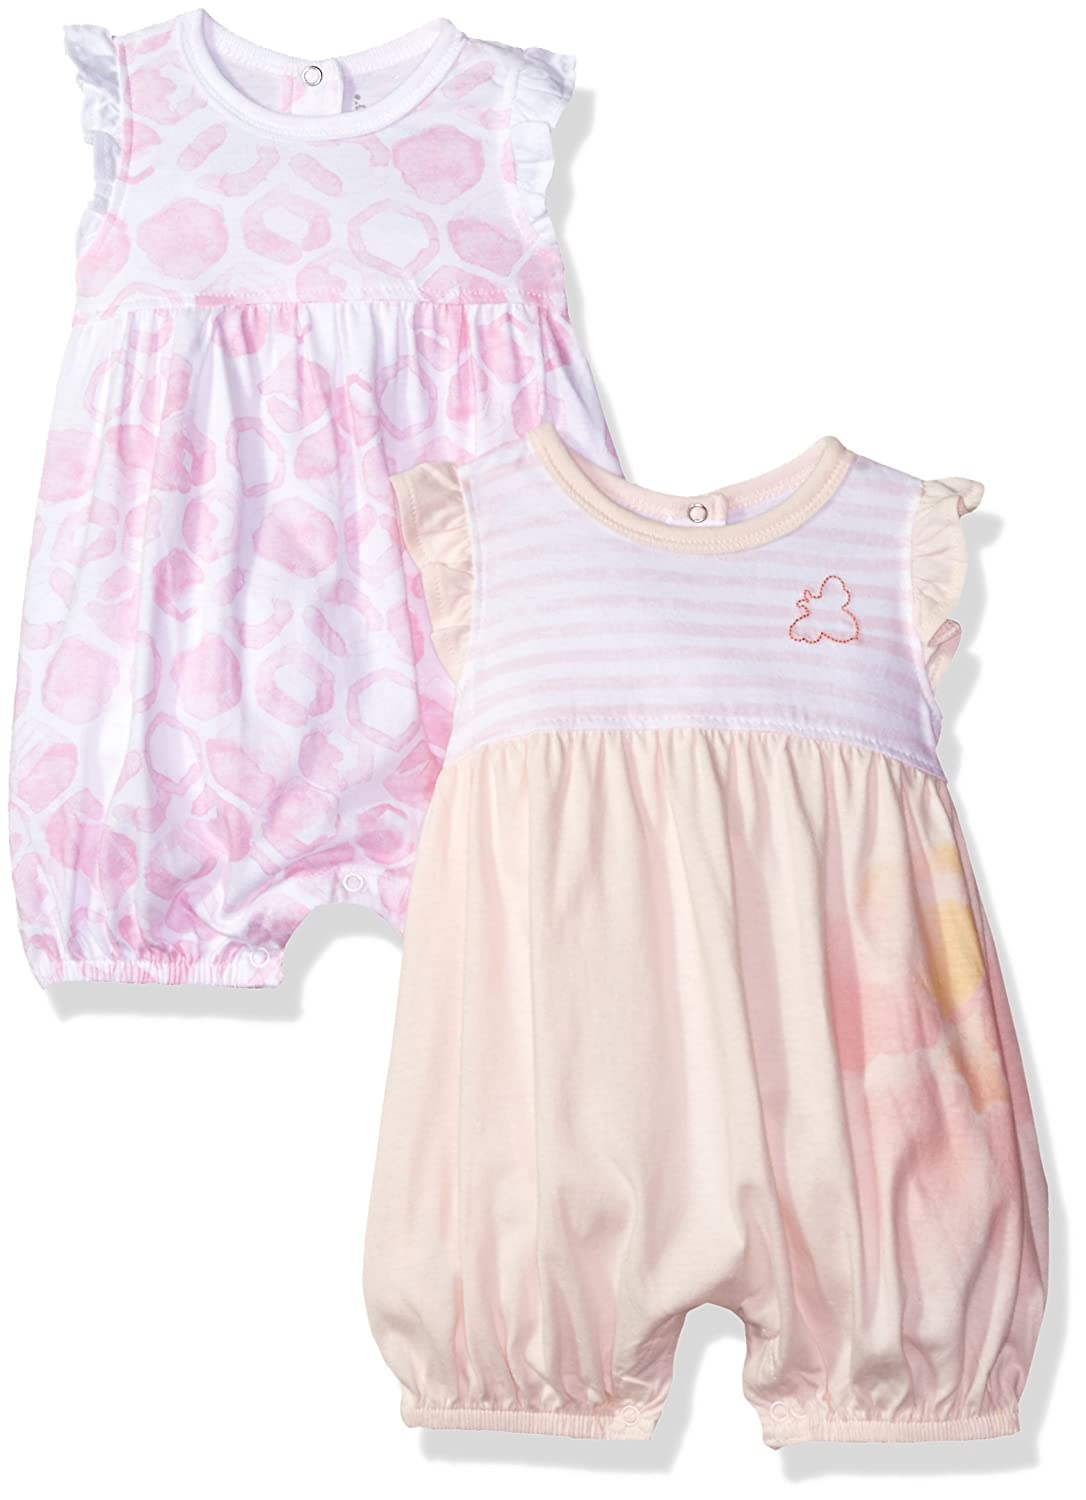 Baby Girl Romper Girls Outfit Clothes Sunsuit Newborn ...